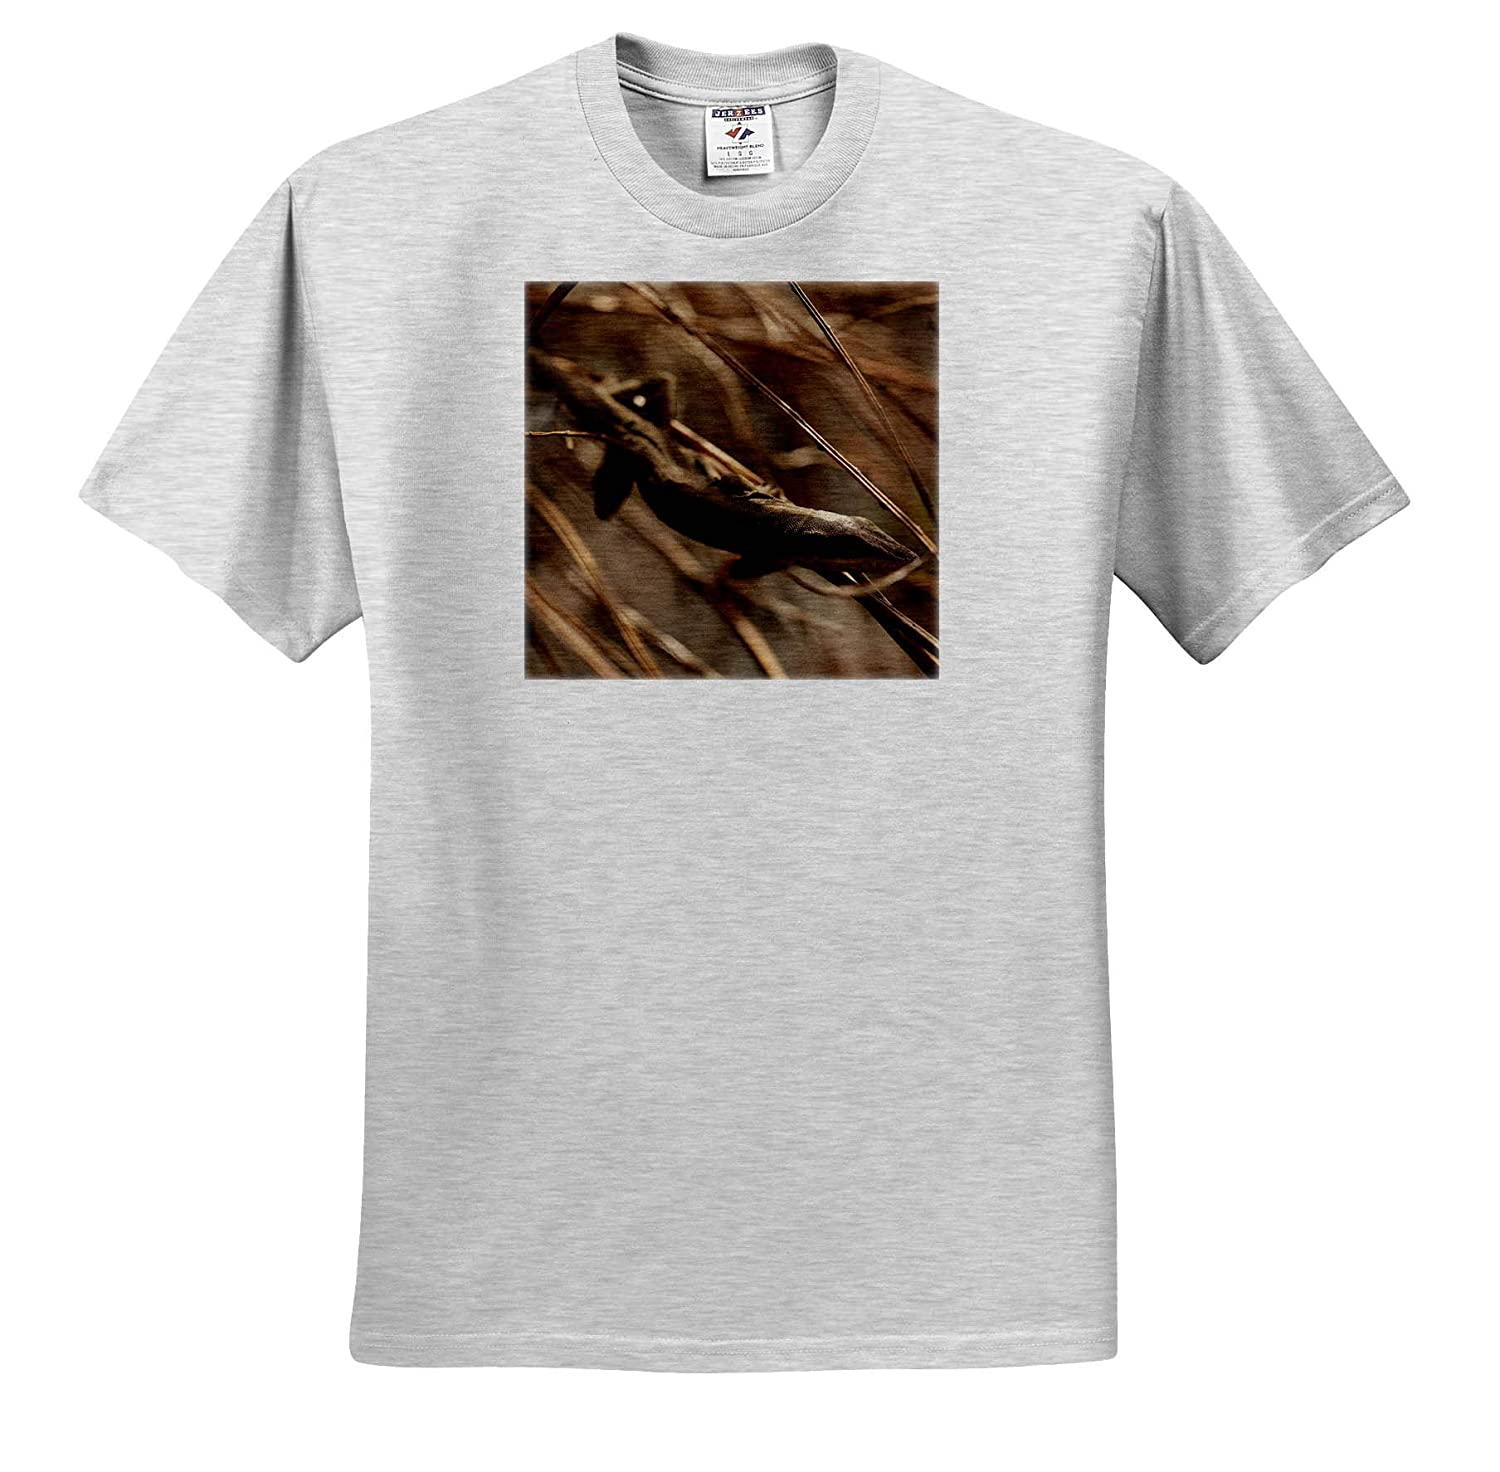 3dRose Stamp City Animals Photograph of a Green Anole Relaxing in Some Dried Ferns - T-Shirts